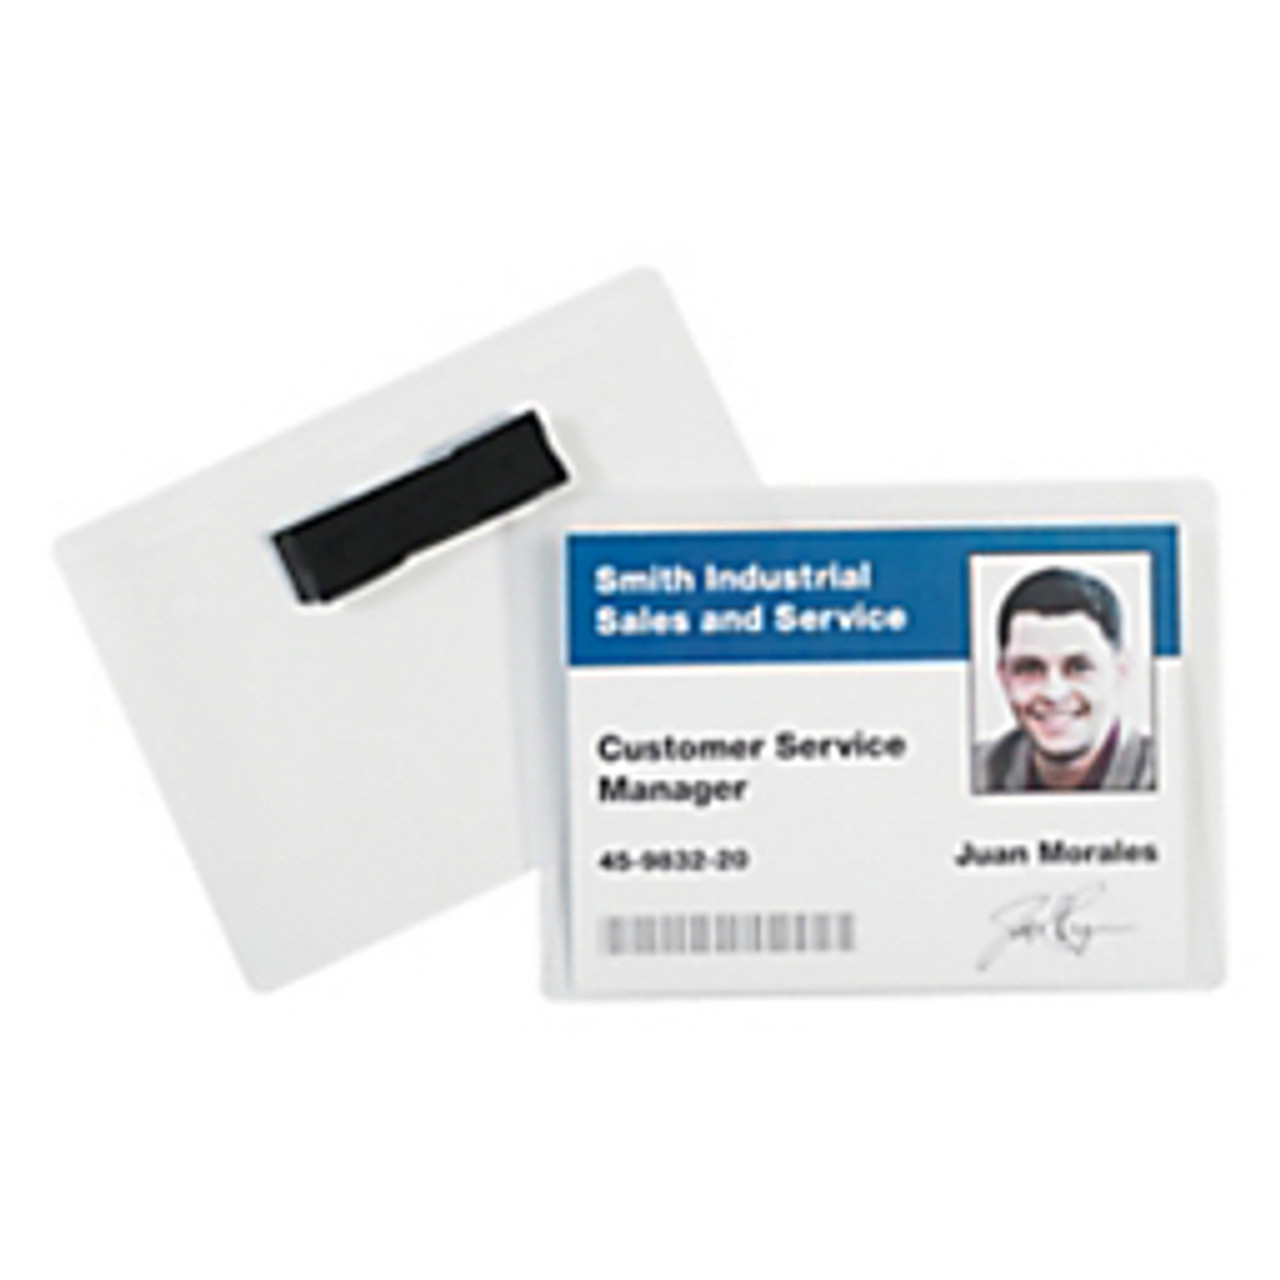 BH20   Office Depot®   Badges   Magnetic Badge Holders 20